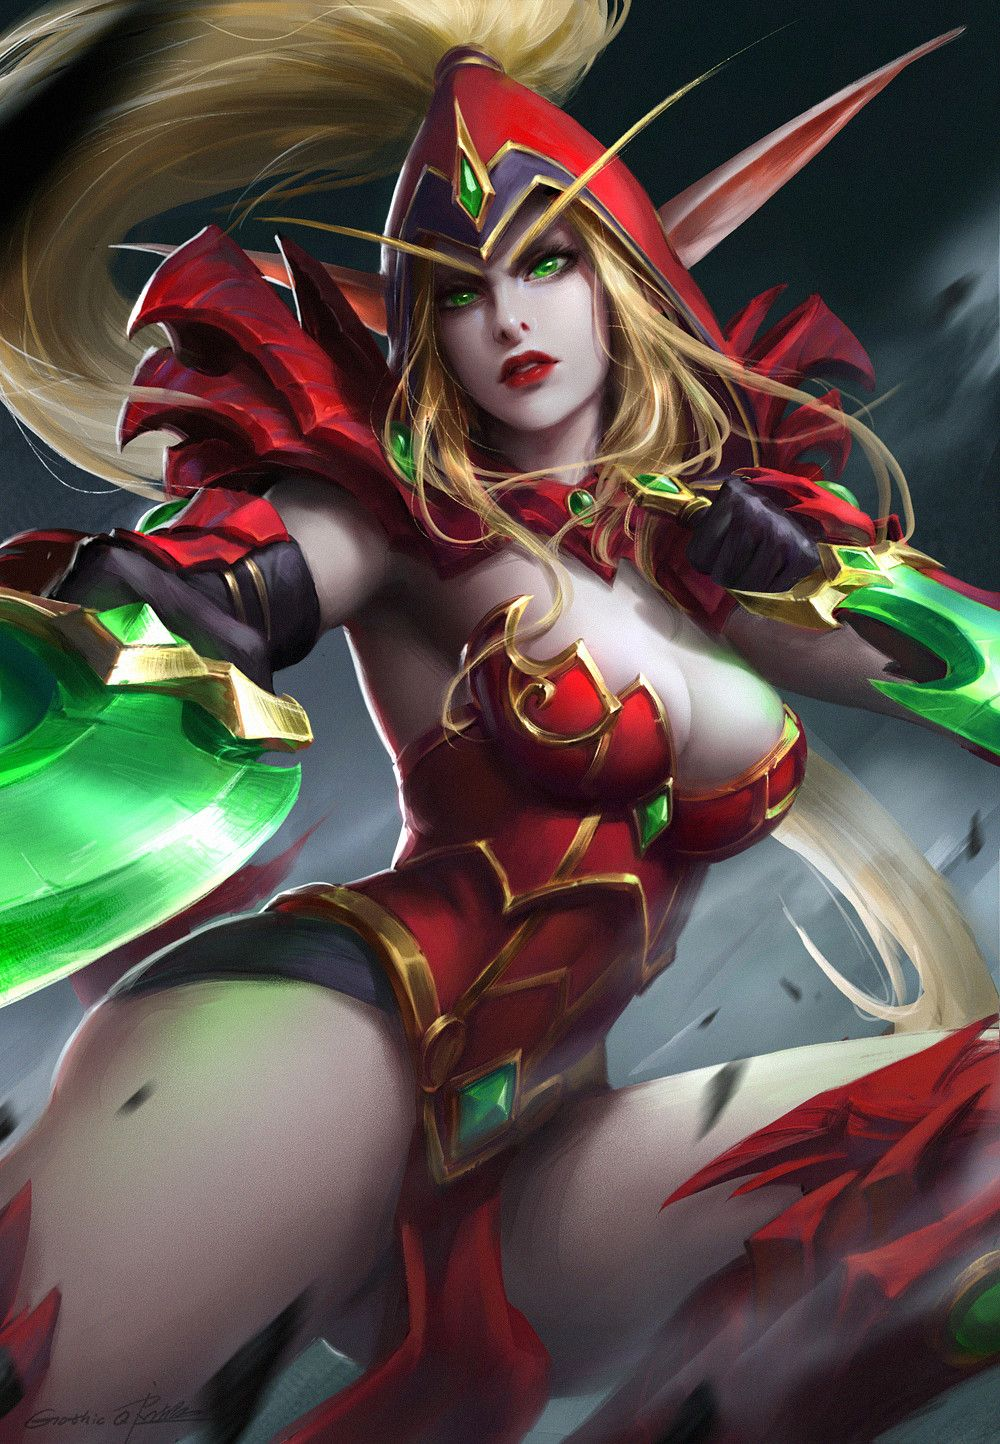 Naked valeera sanguinar against. consider, that